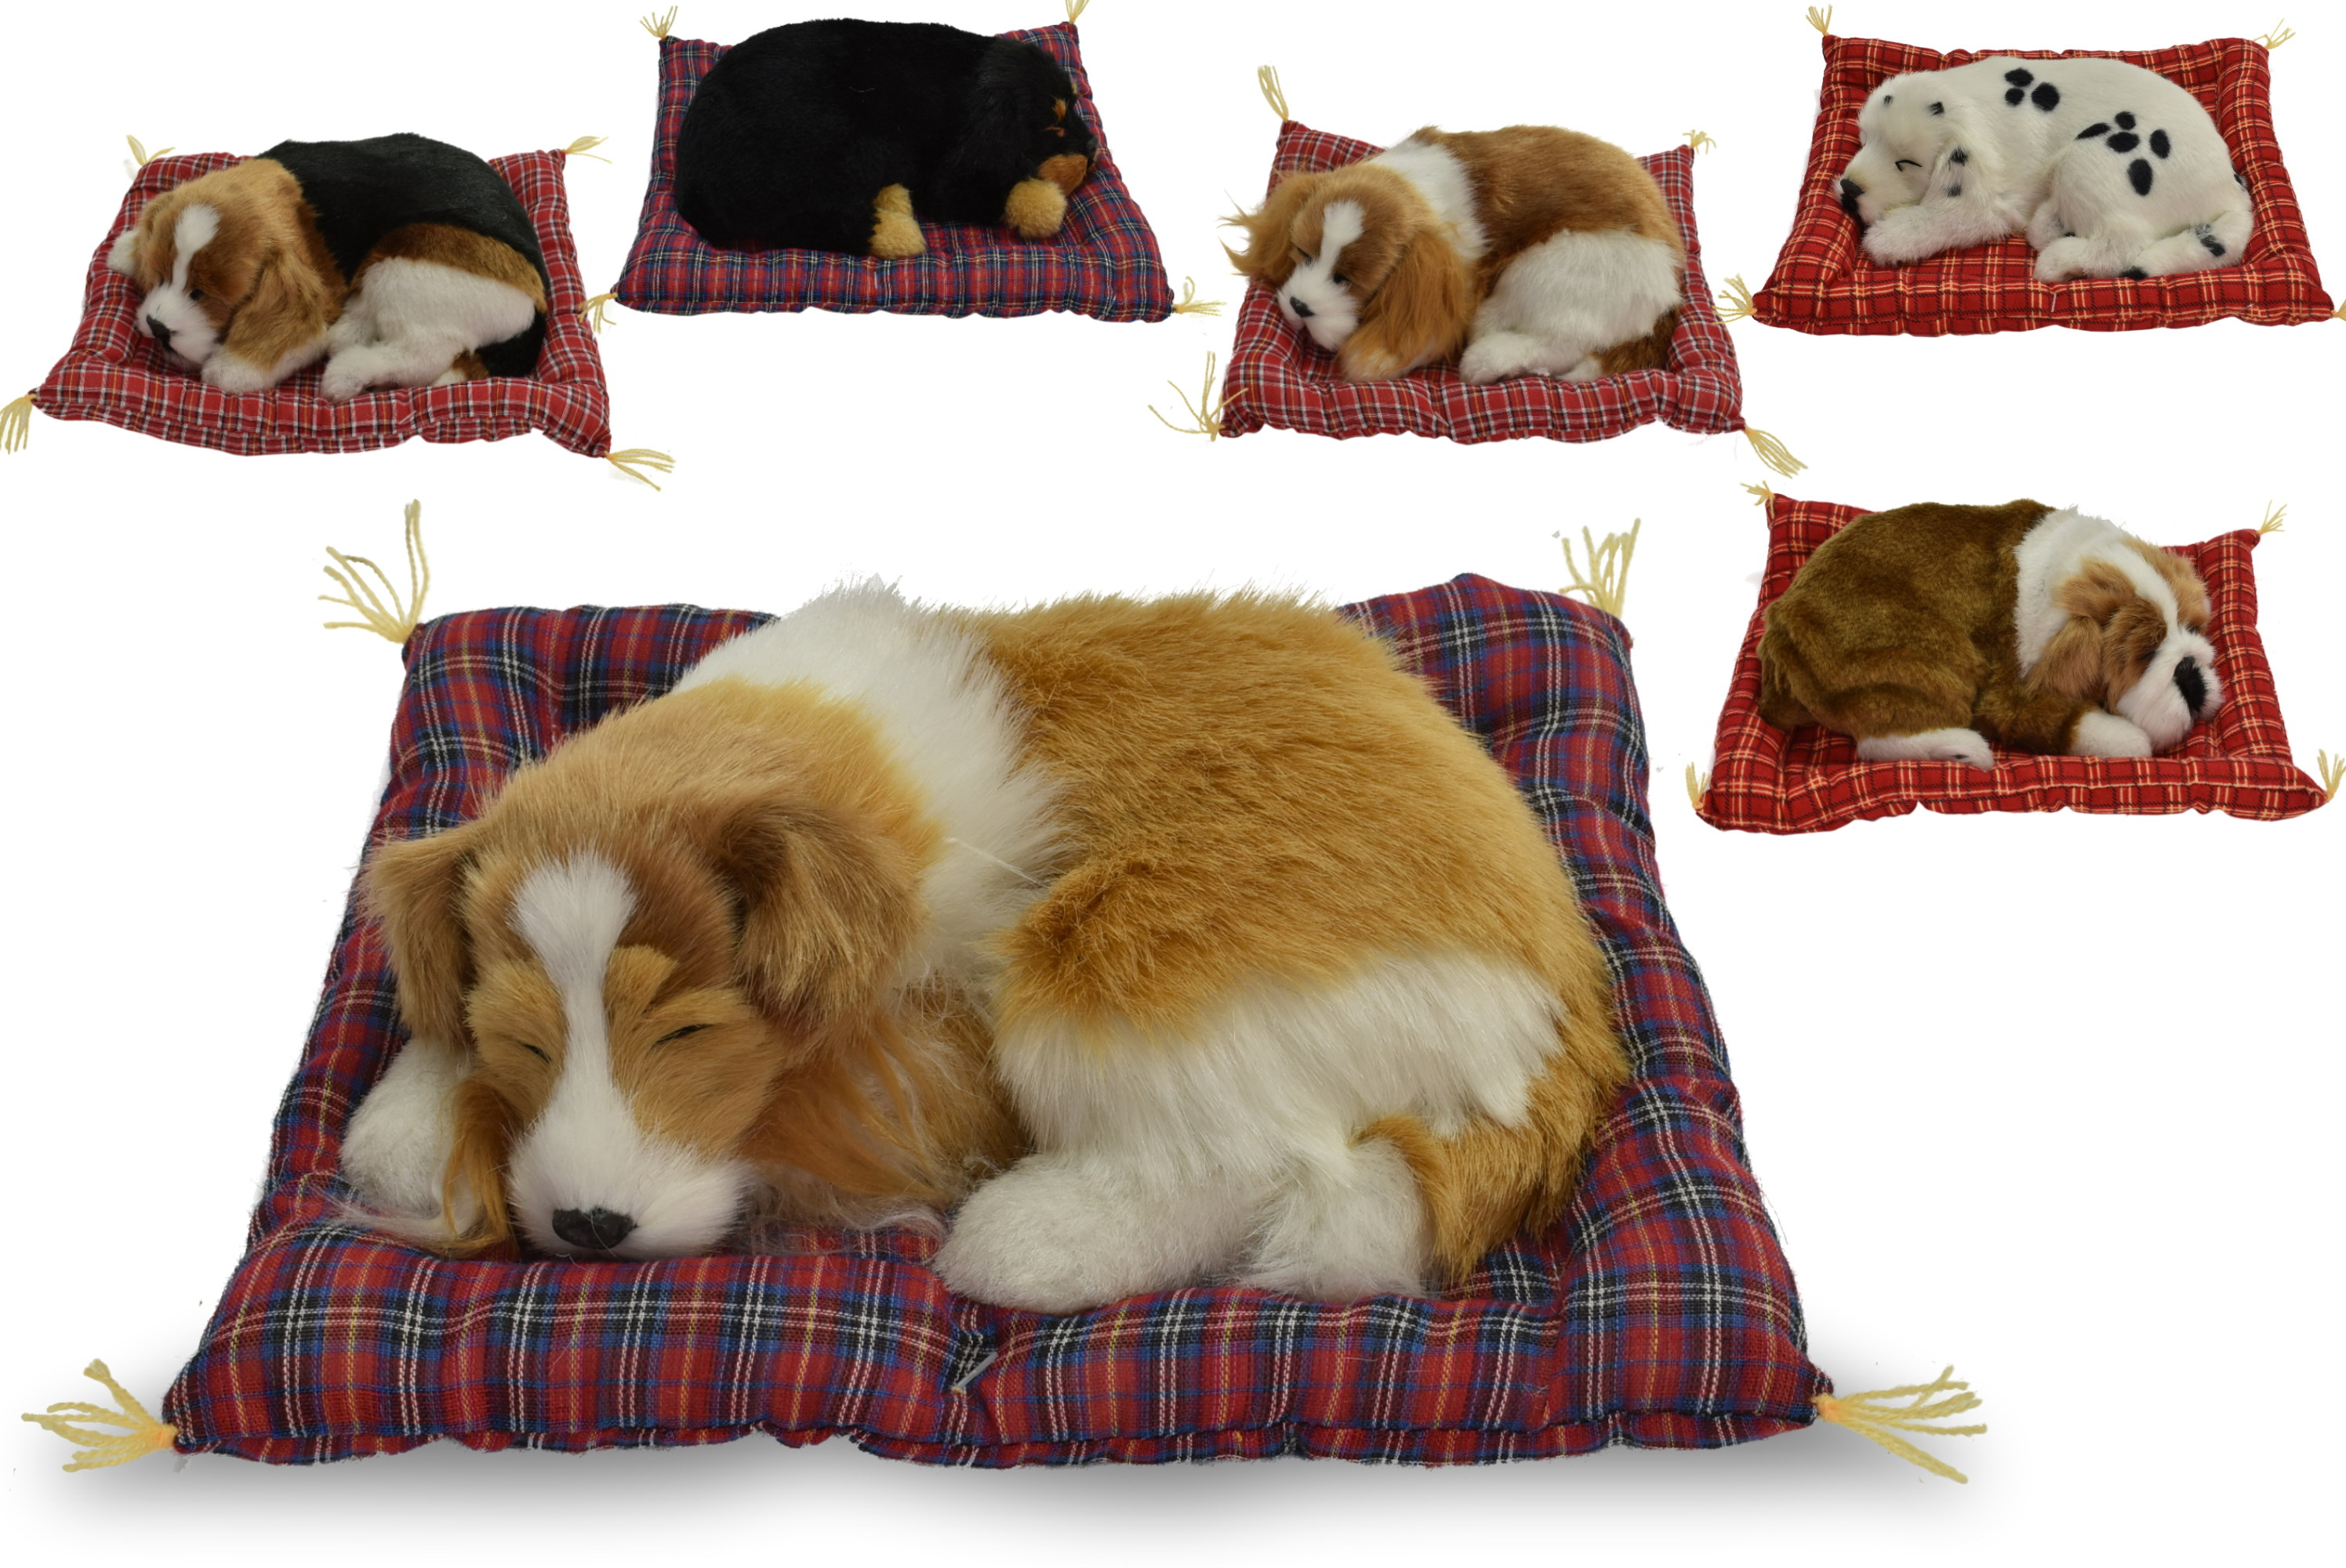 24cm Dog On Blanket With Sound - 6 Assorted